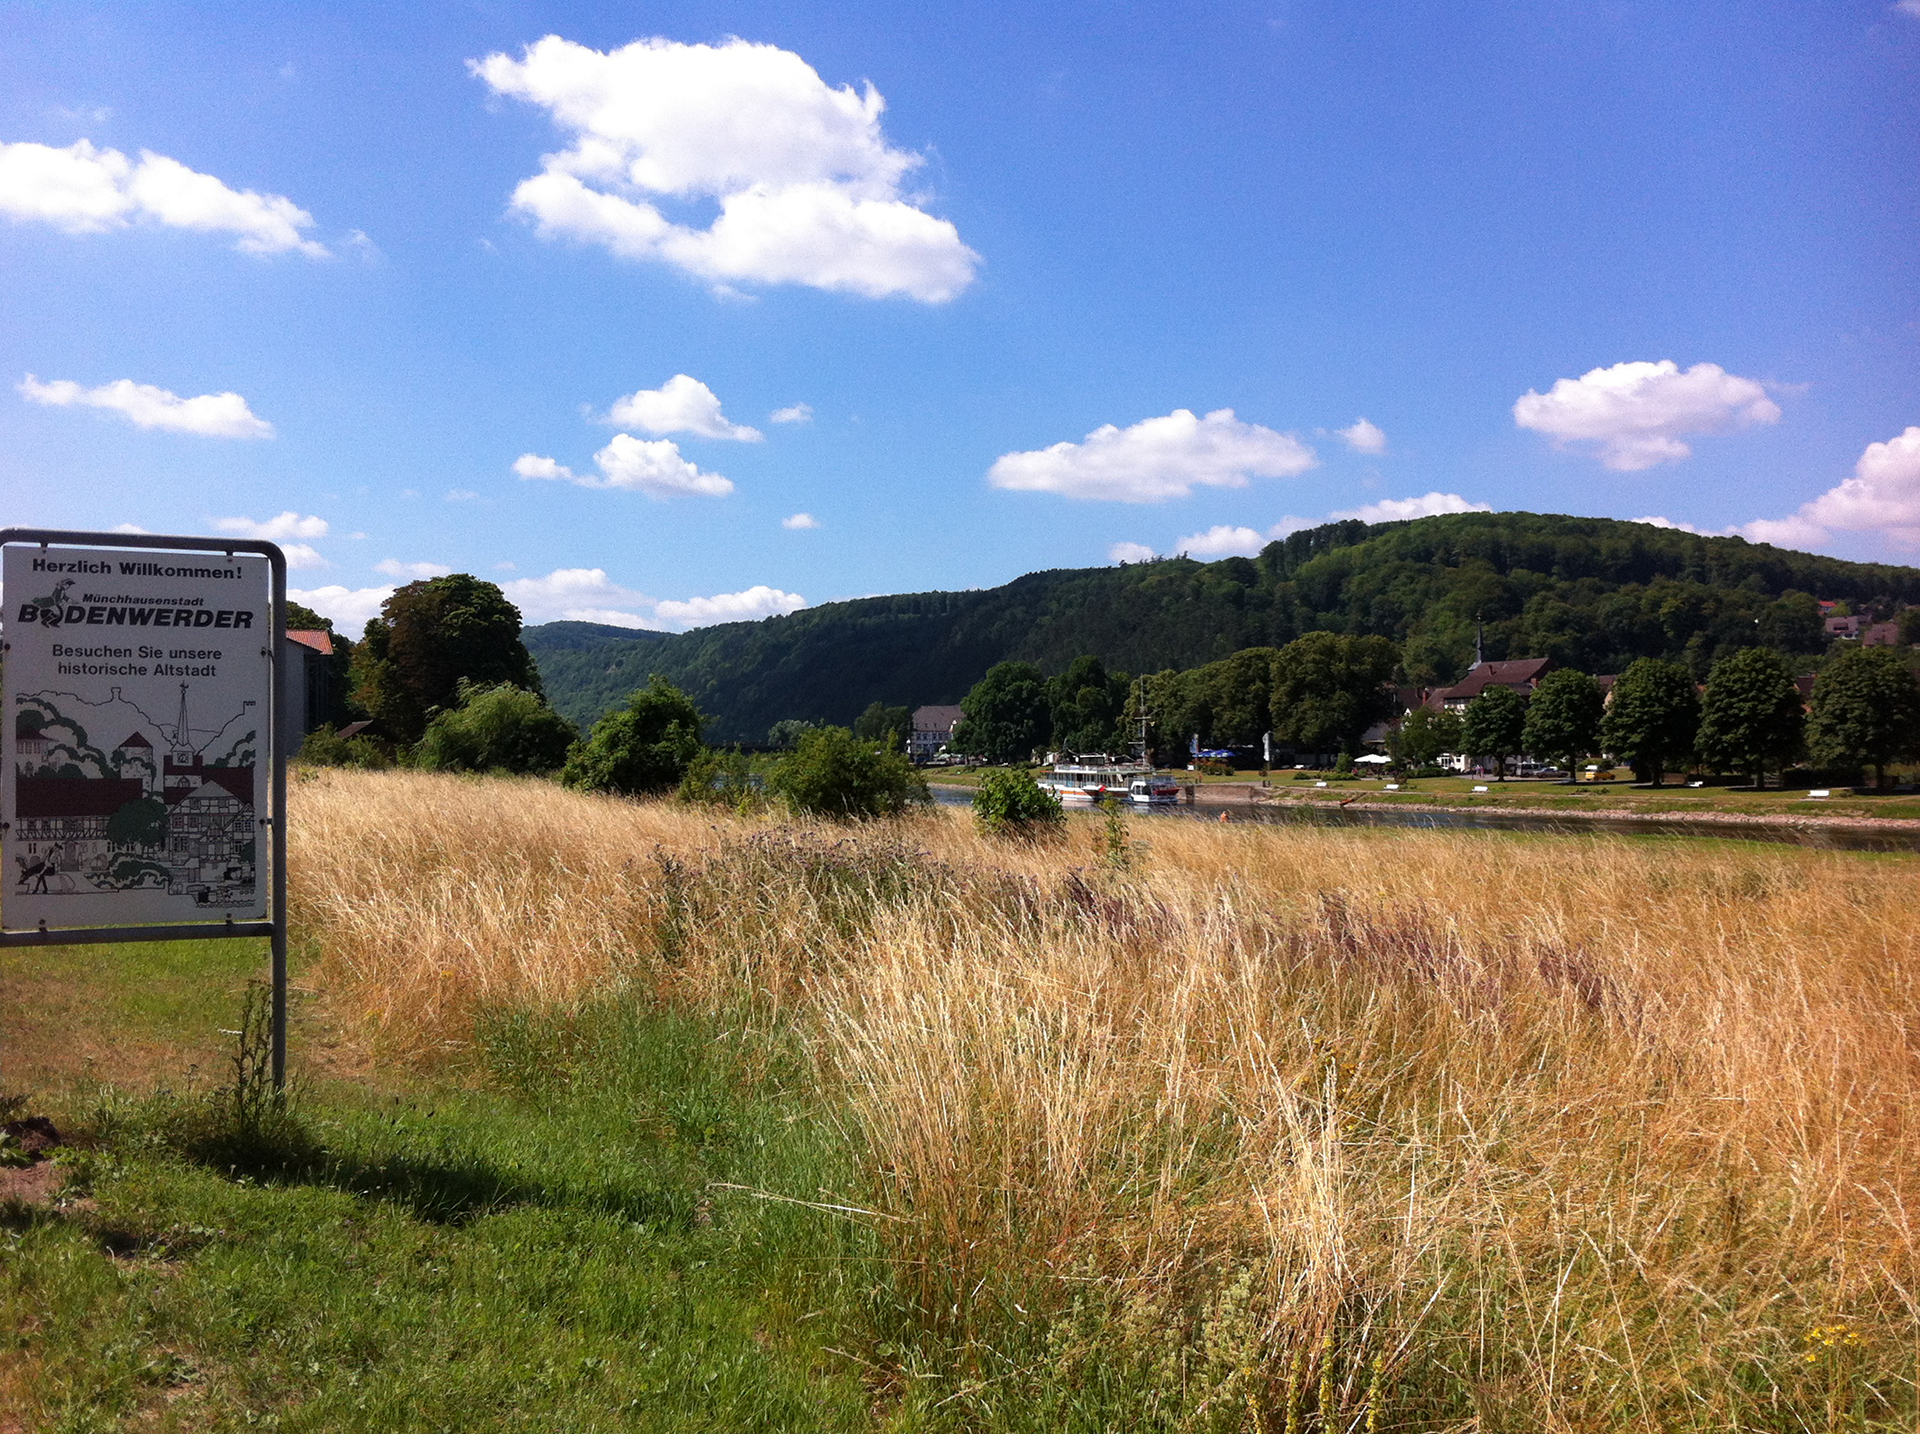 Tour destination reached: Bodenwerder on the river Weser